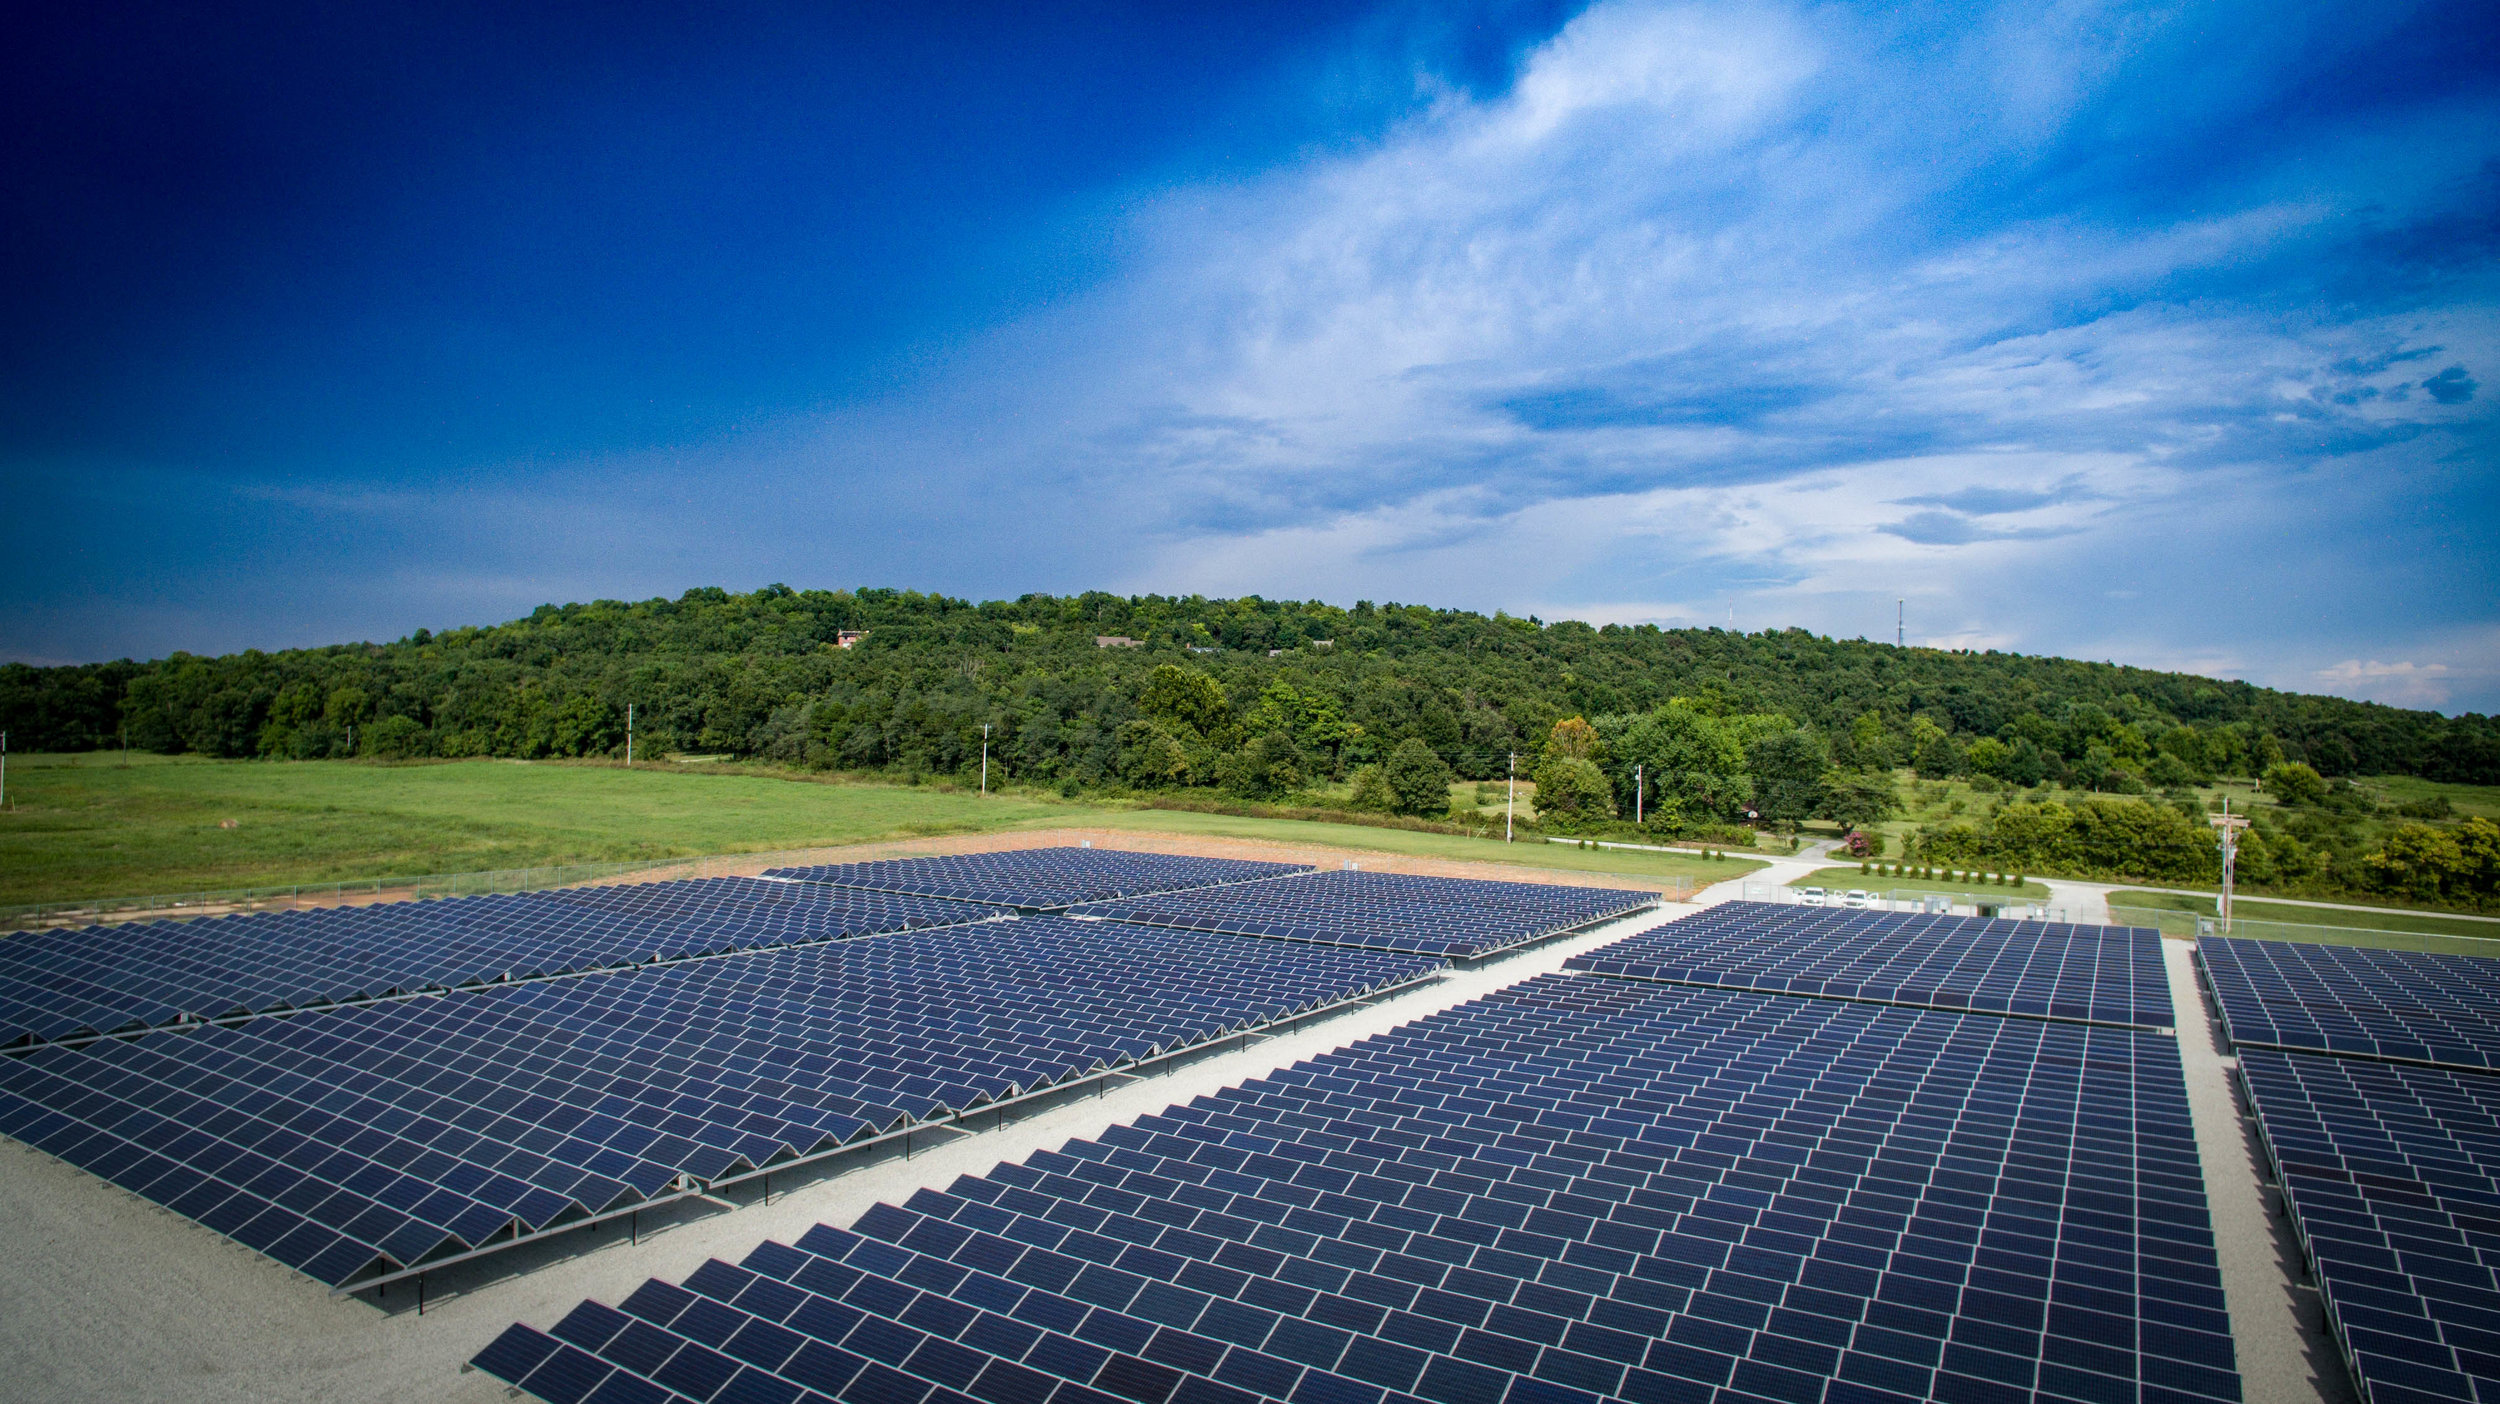 Ozarks Electric Cooperative (OECC) - 1 MW Ground Mounted System on Piers - SPRINGDALE, ARKANSAS